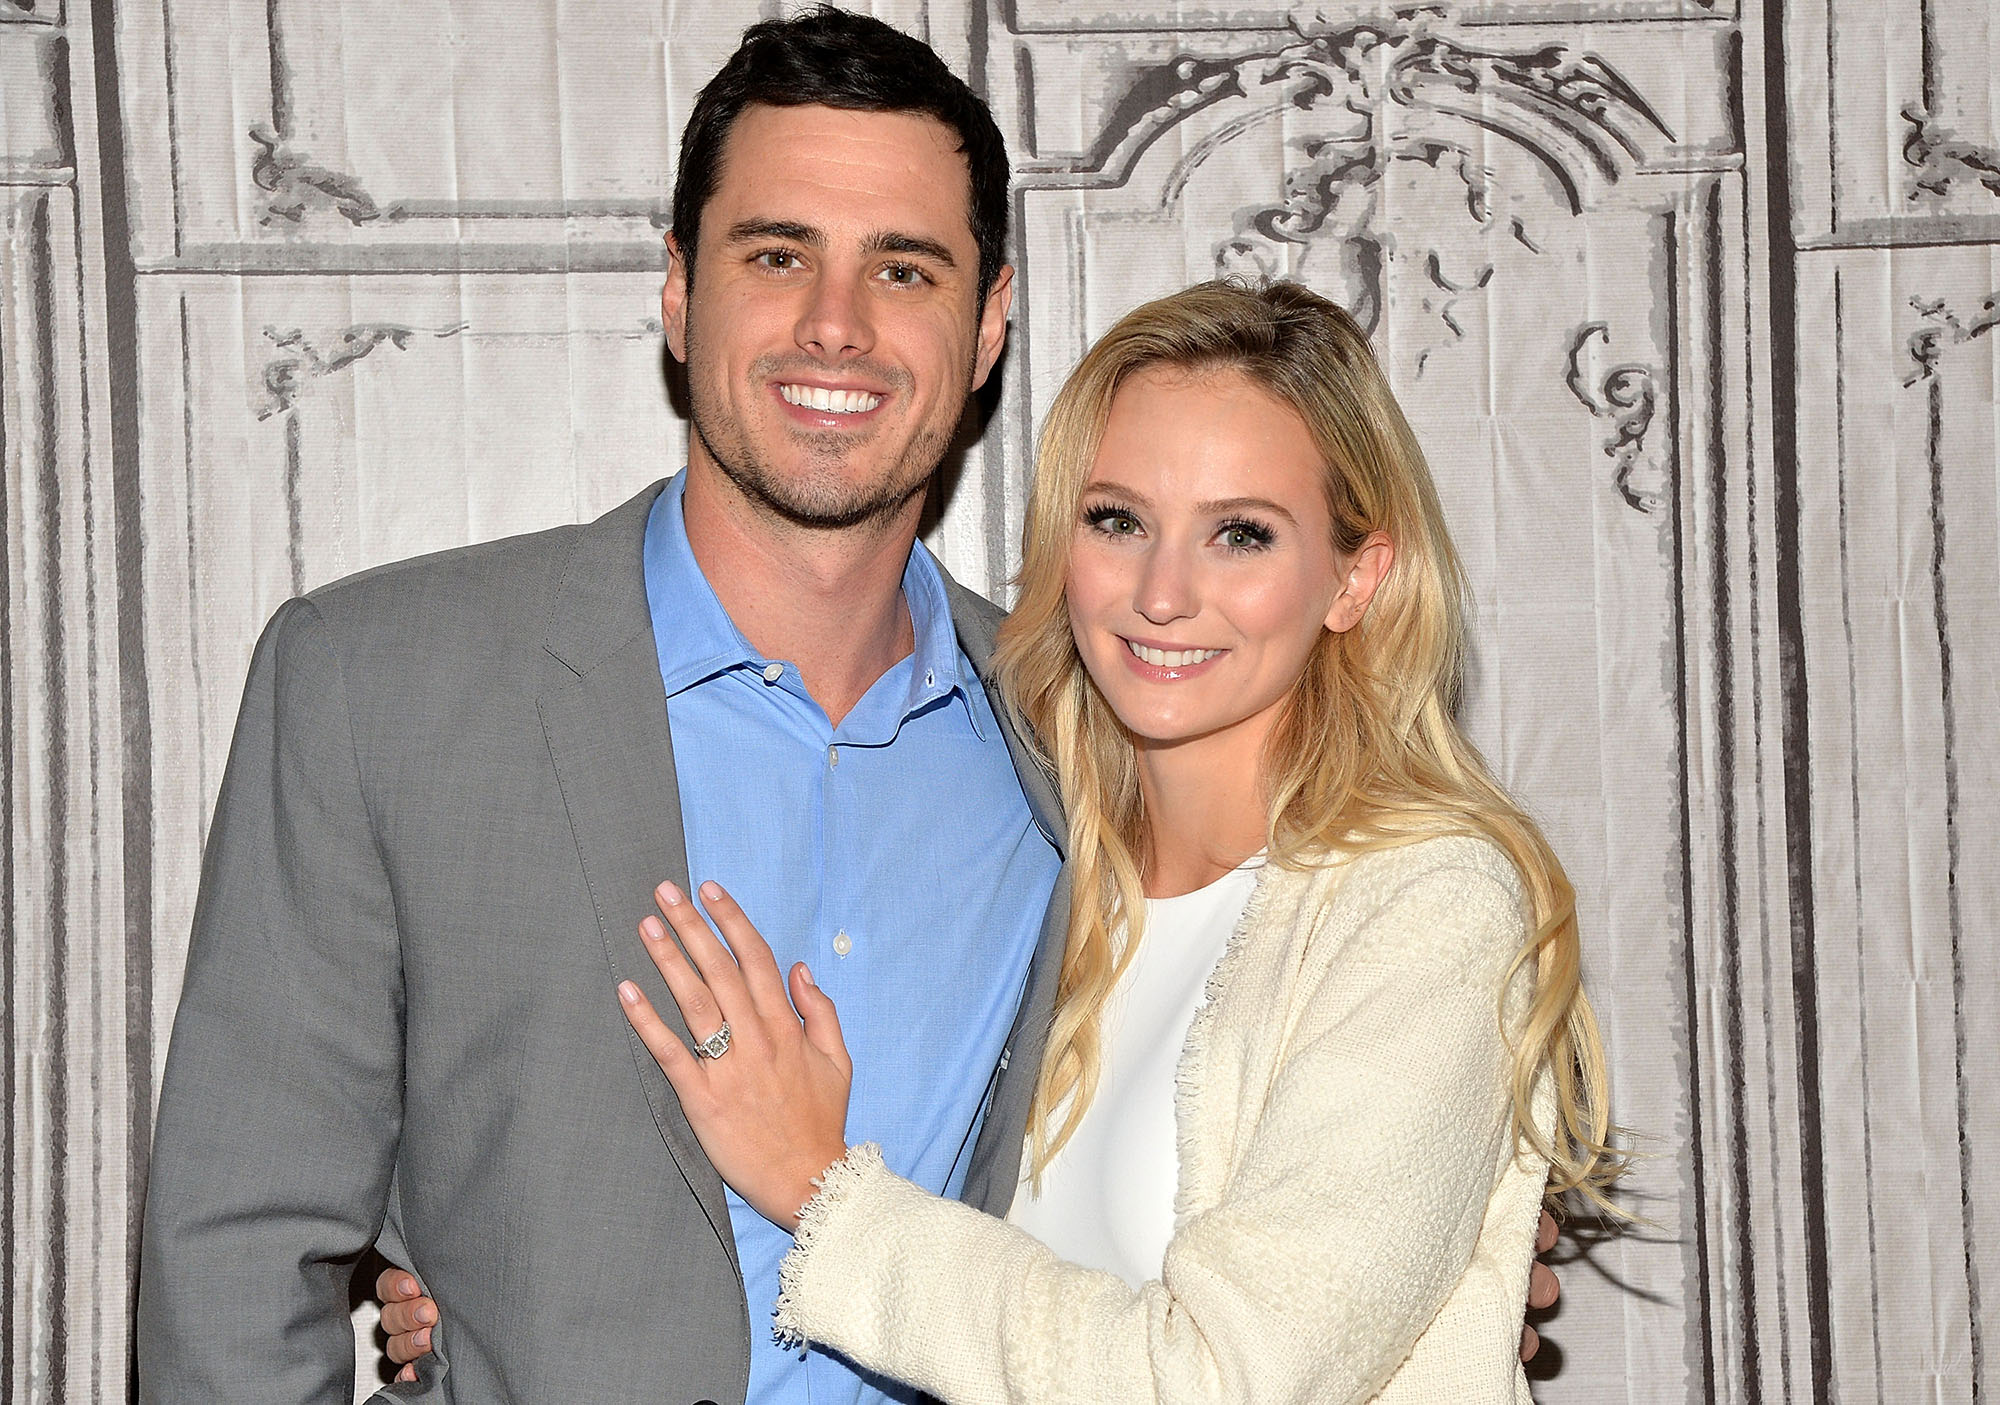 NEW YORK, NY - MARCH 15:  Bachelor Ben Higgins and Lauren Bushnell (Photo by Slaven Vlasic/Getty Images)